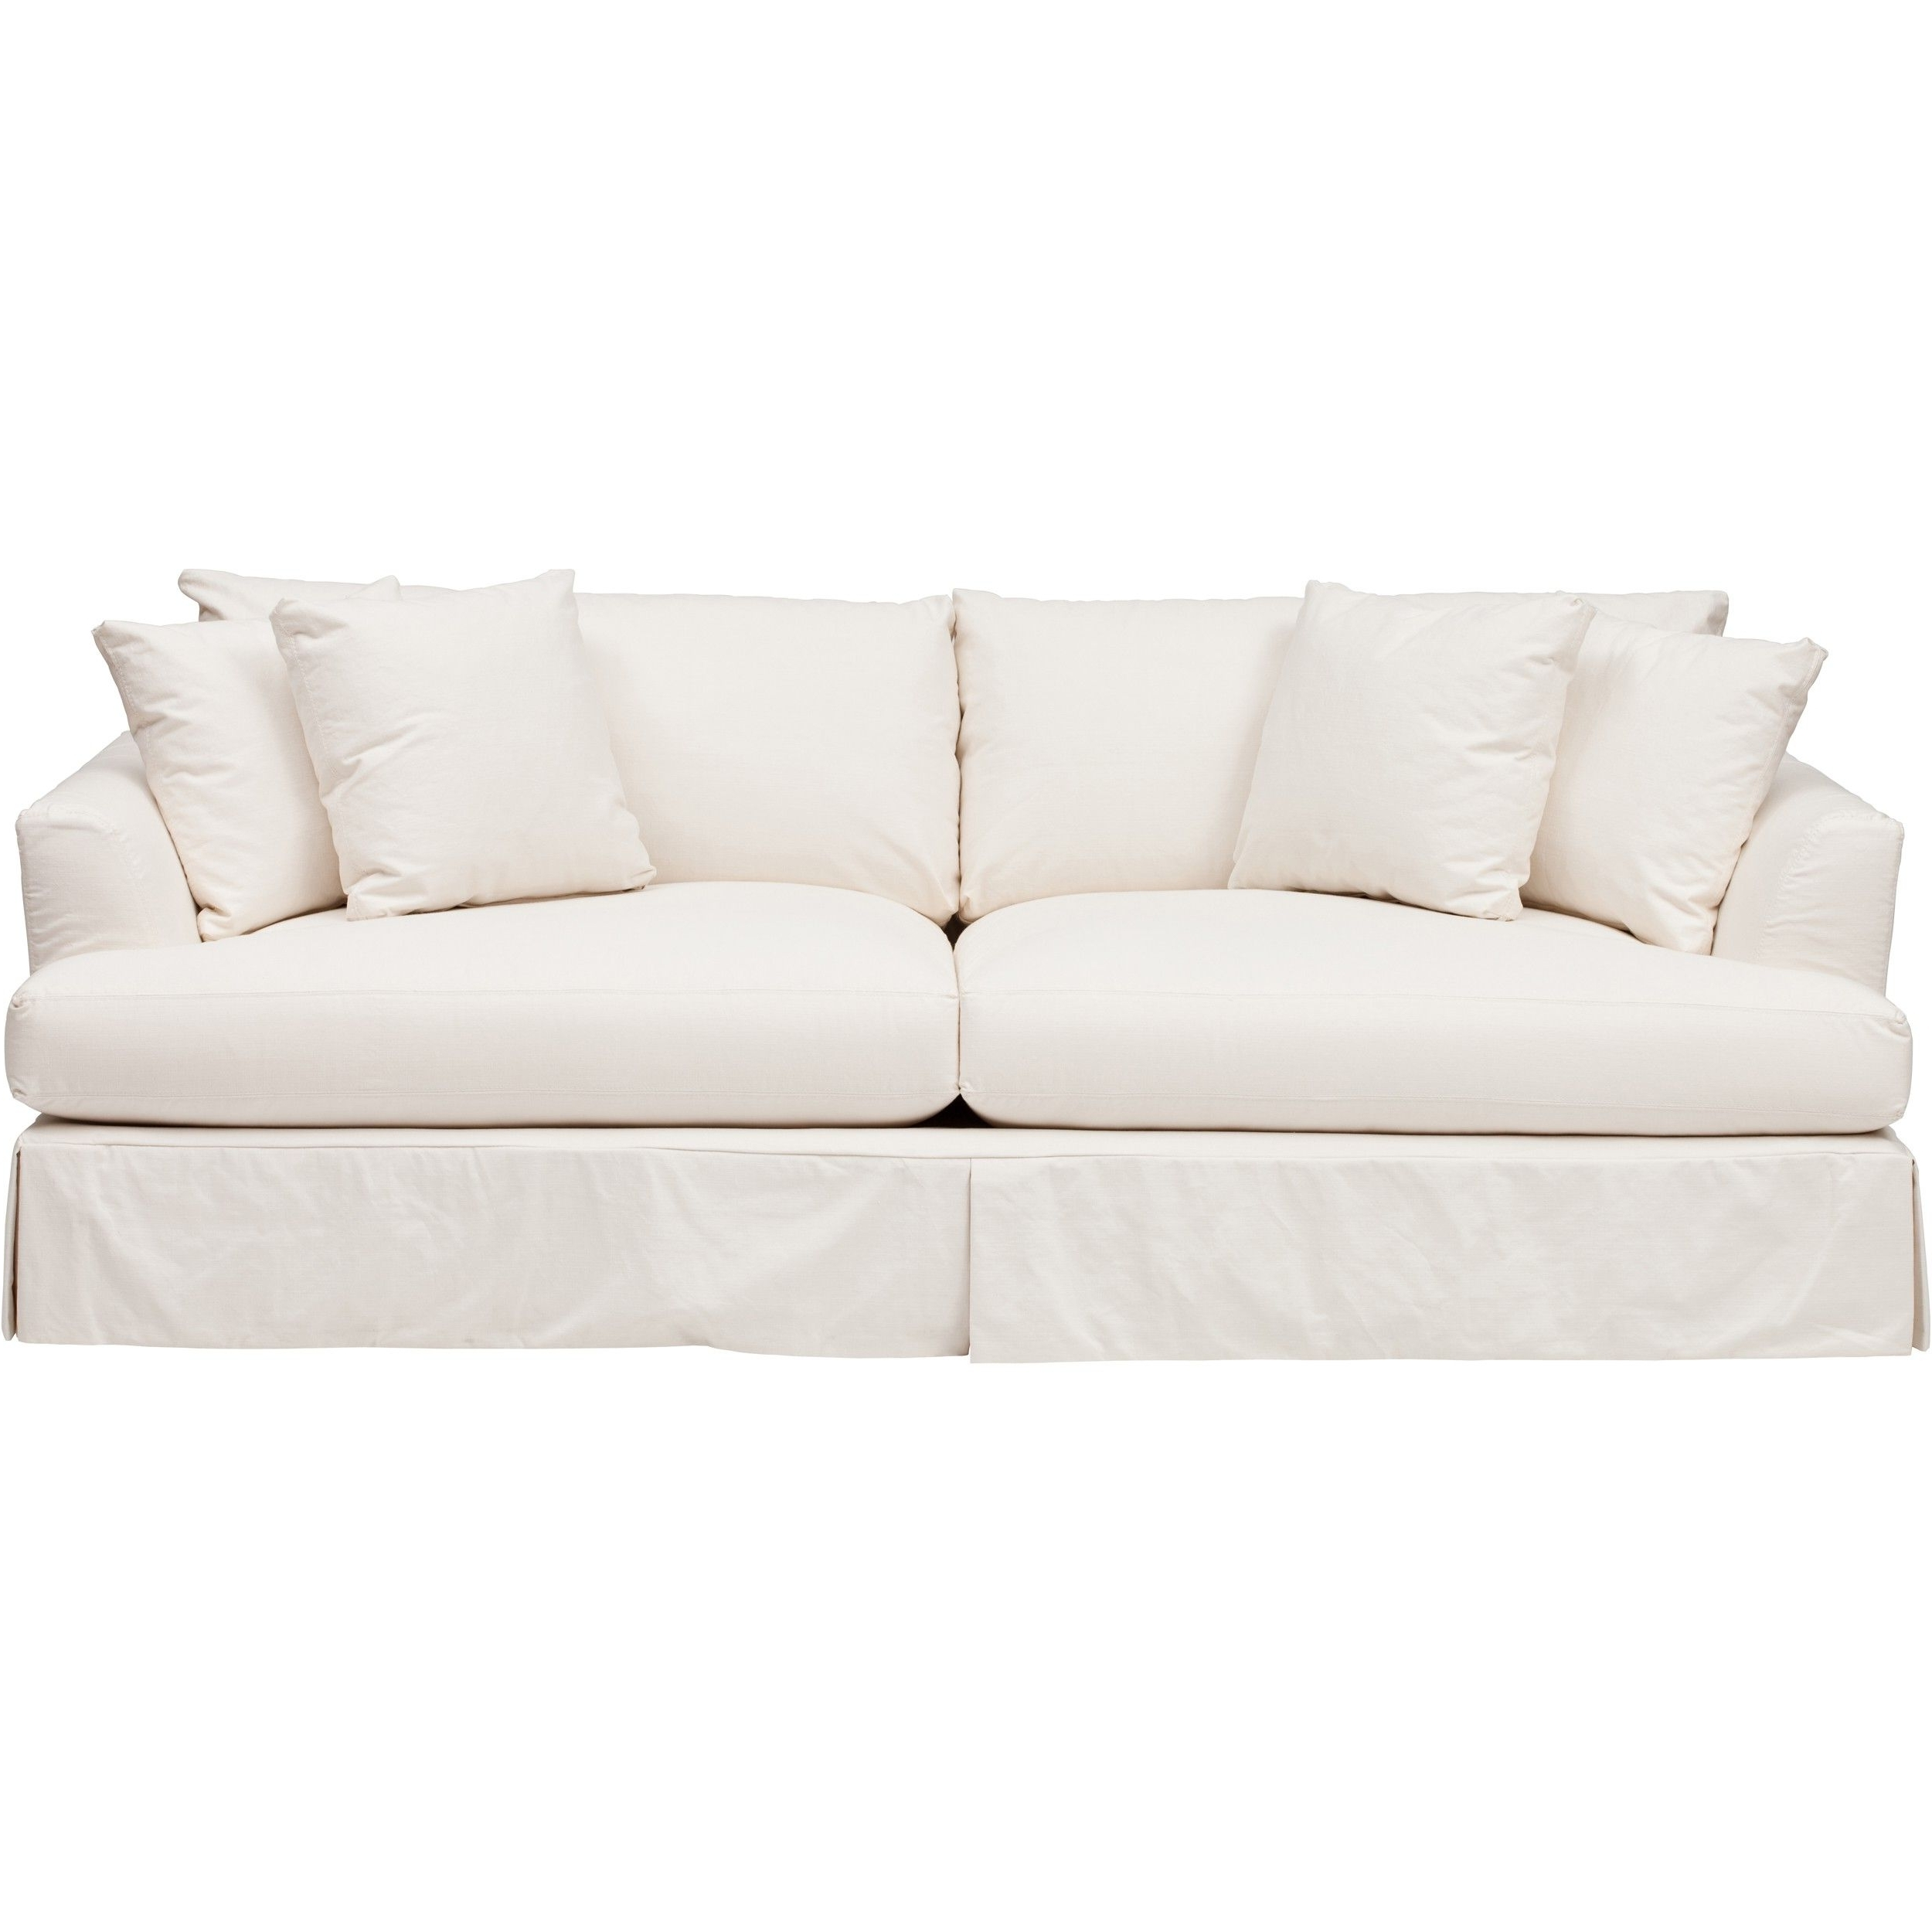 Andre Slipcover Sofa – Furniture – Sofas – Fabric – Slipcovers Pertaining To Most Popular Slipcovers Sofas (View 2 of 20)